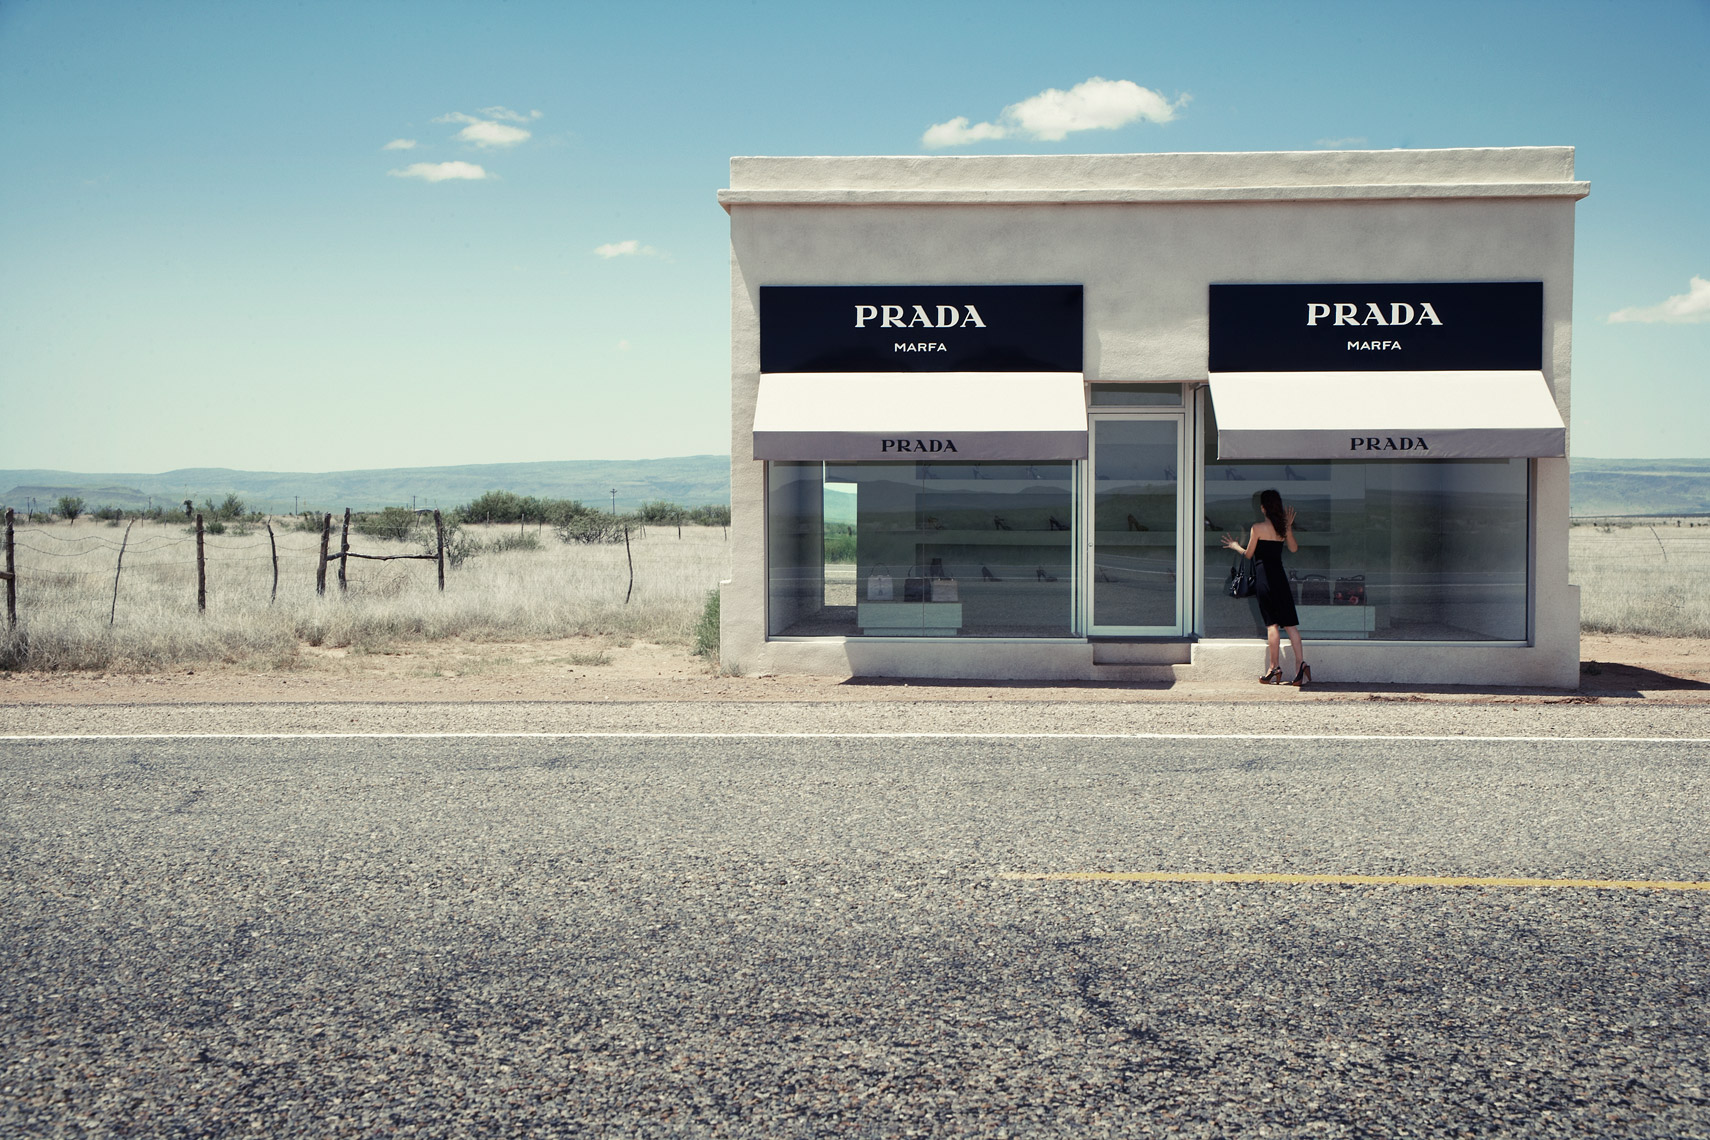 USA_Texas-Prada-copy.jpg